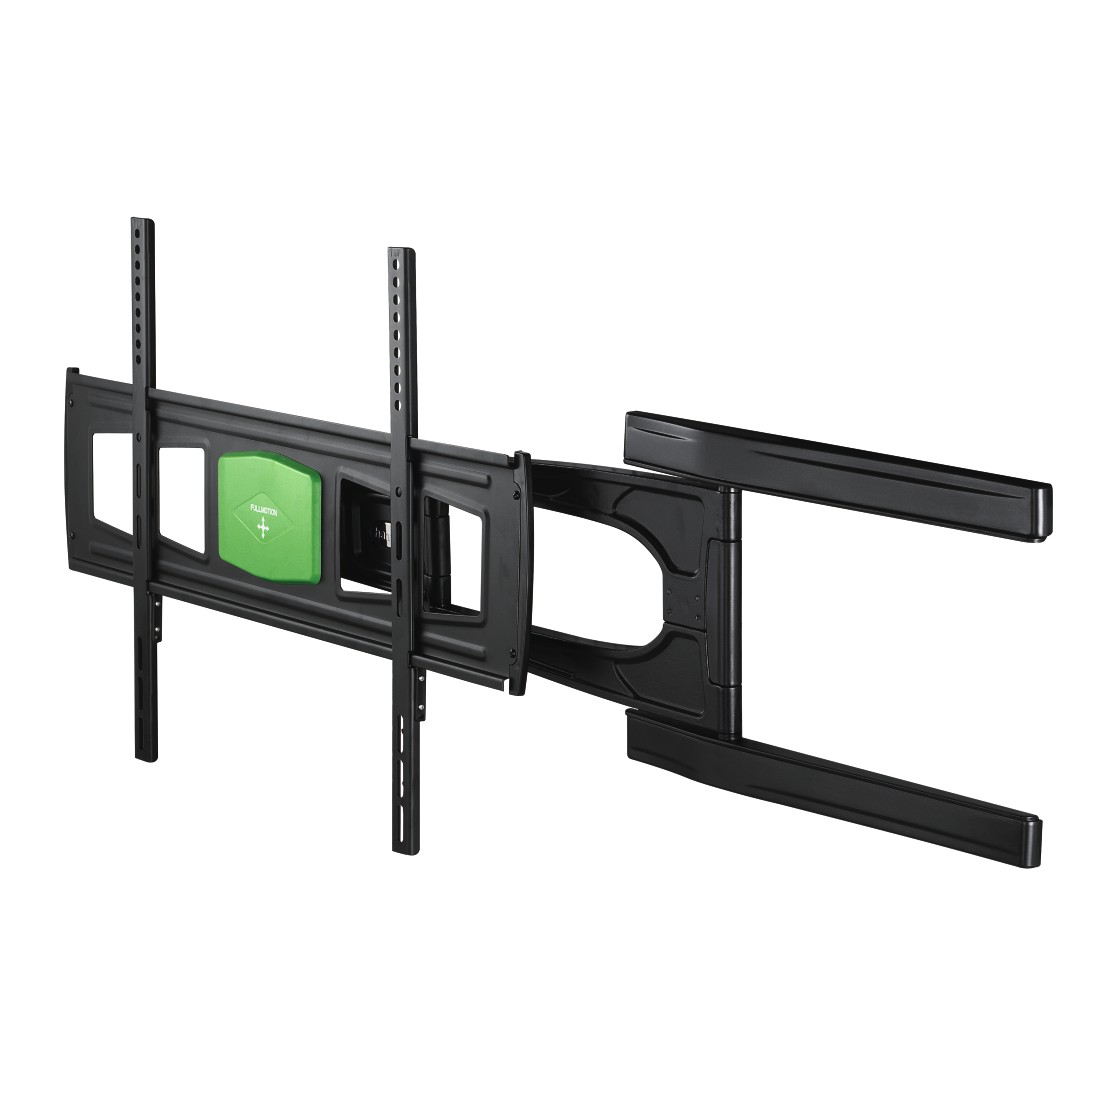 dex8 High-Res Detail 8 - Hama, Ultraslim FULLMOTION TV Wall Bracket, 3 stars, 165 cm (65), 2 arms, bk